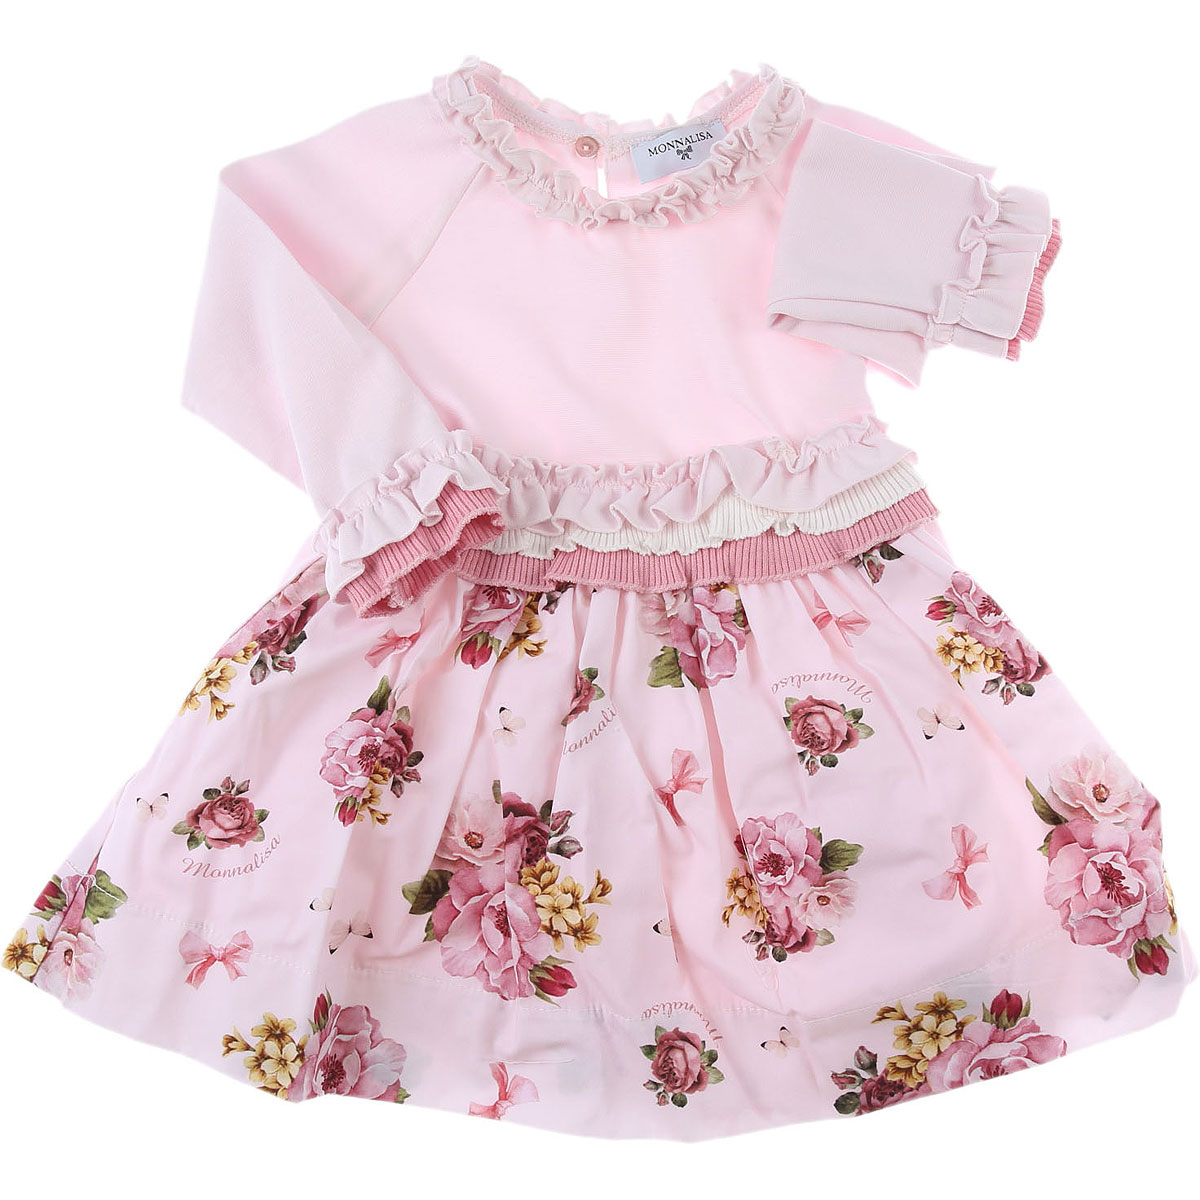 Monnalisa Baby Dress for Girls On Sale, Pink, Viscose, 2019, 12M 18M 2Y 6M 9M